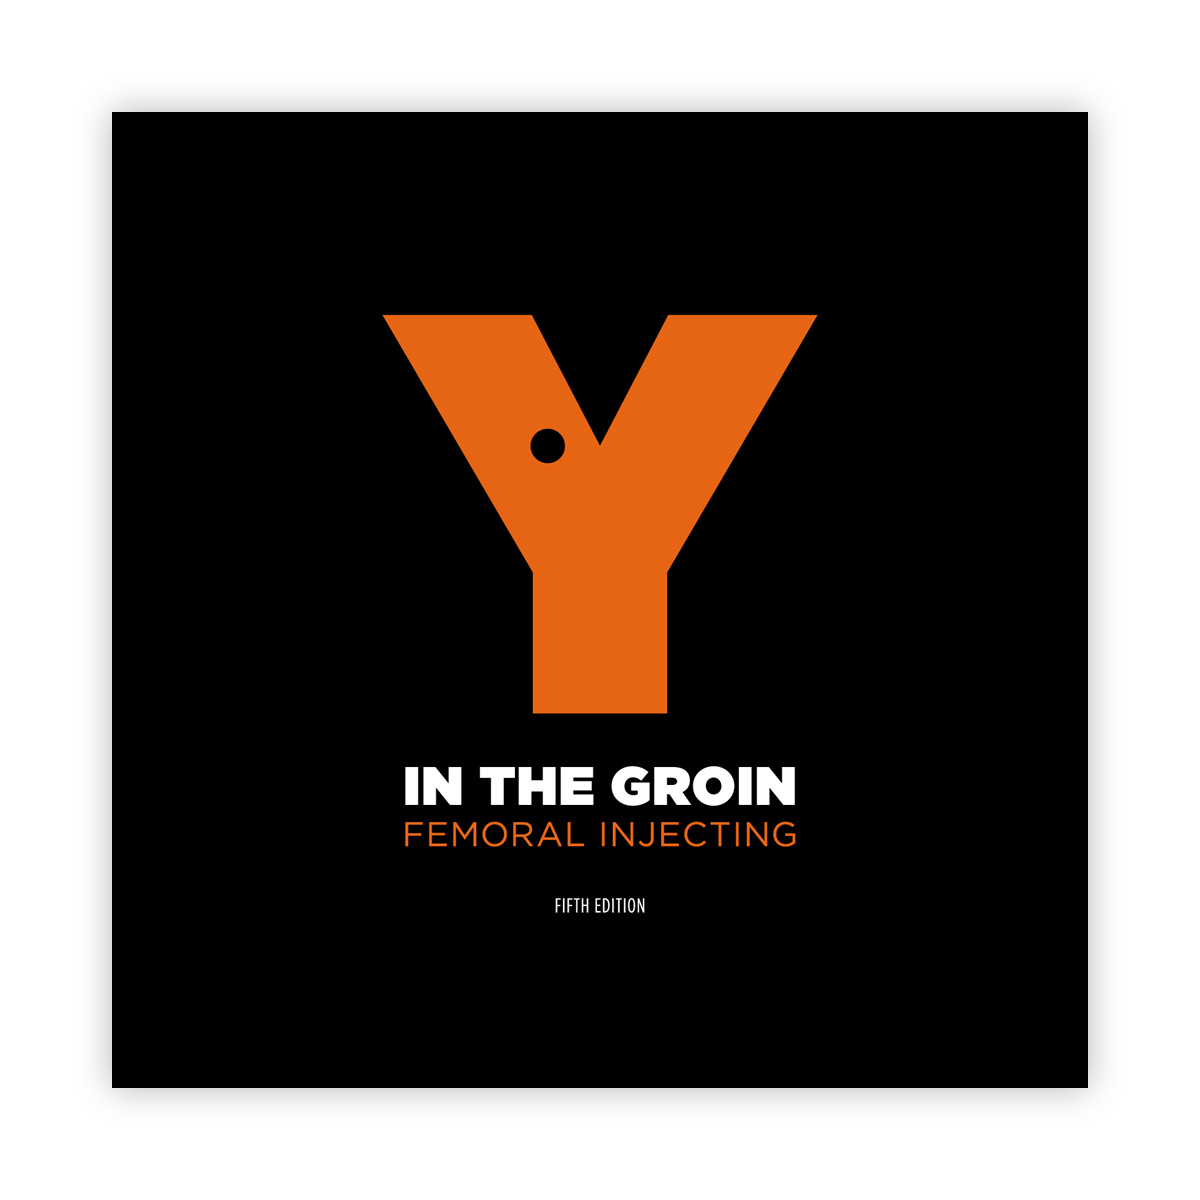 'In the groin' booklet